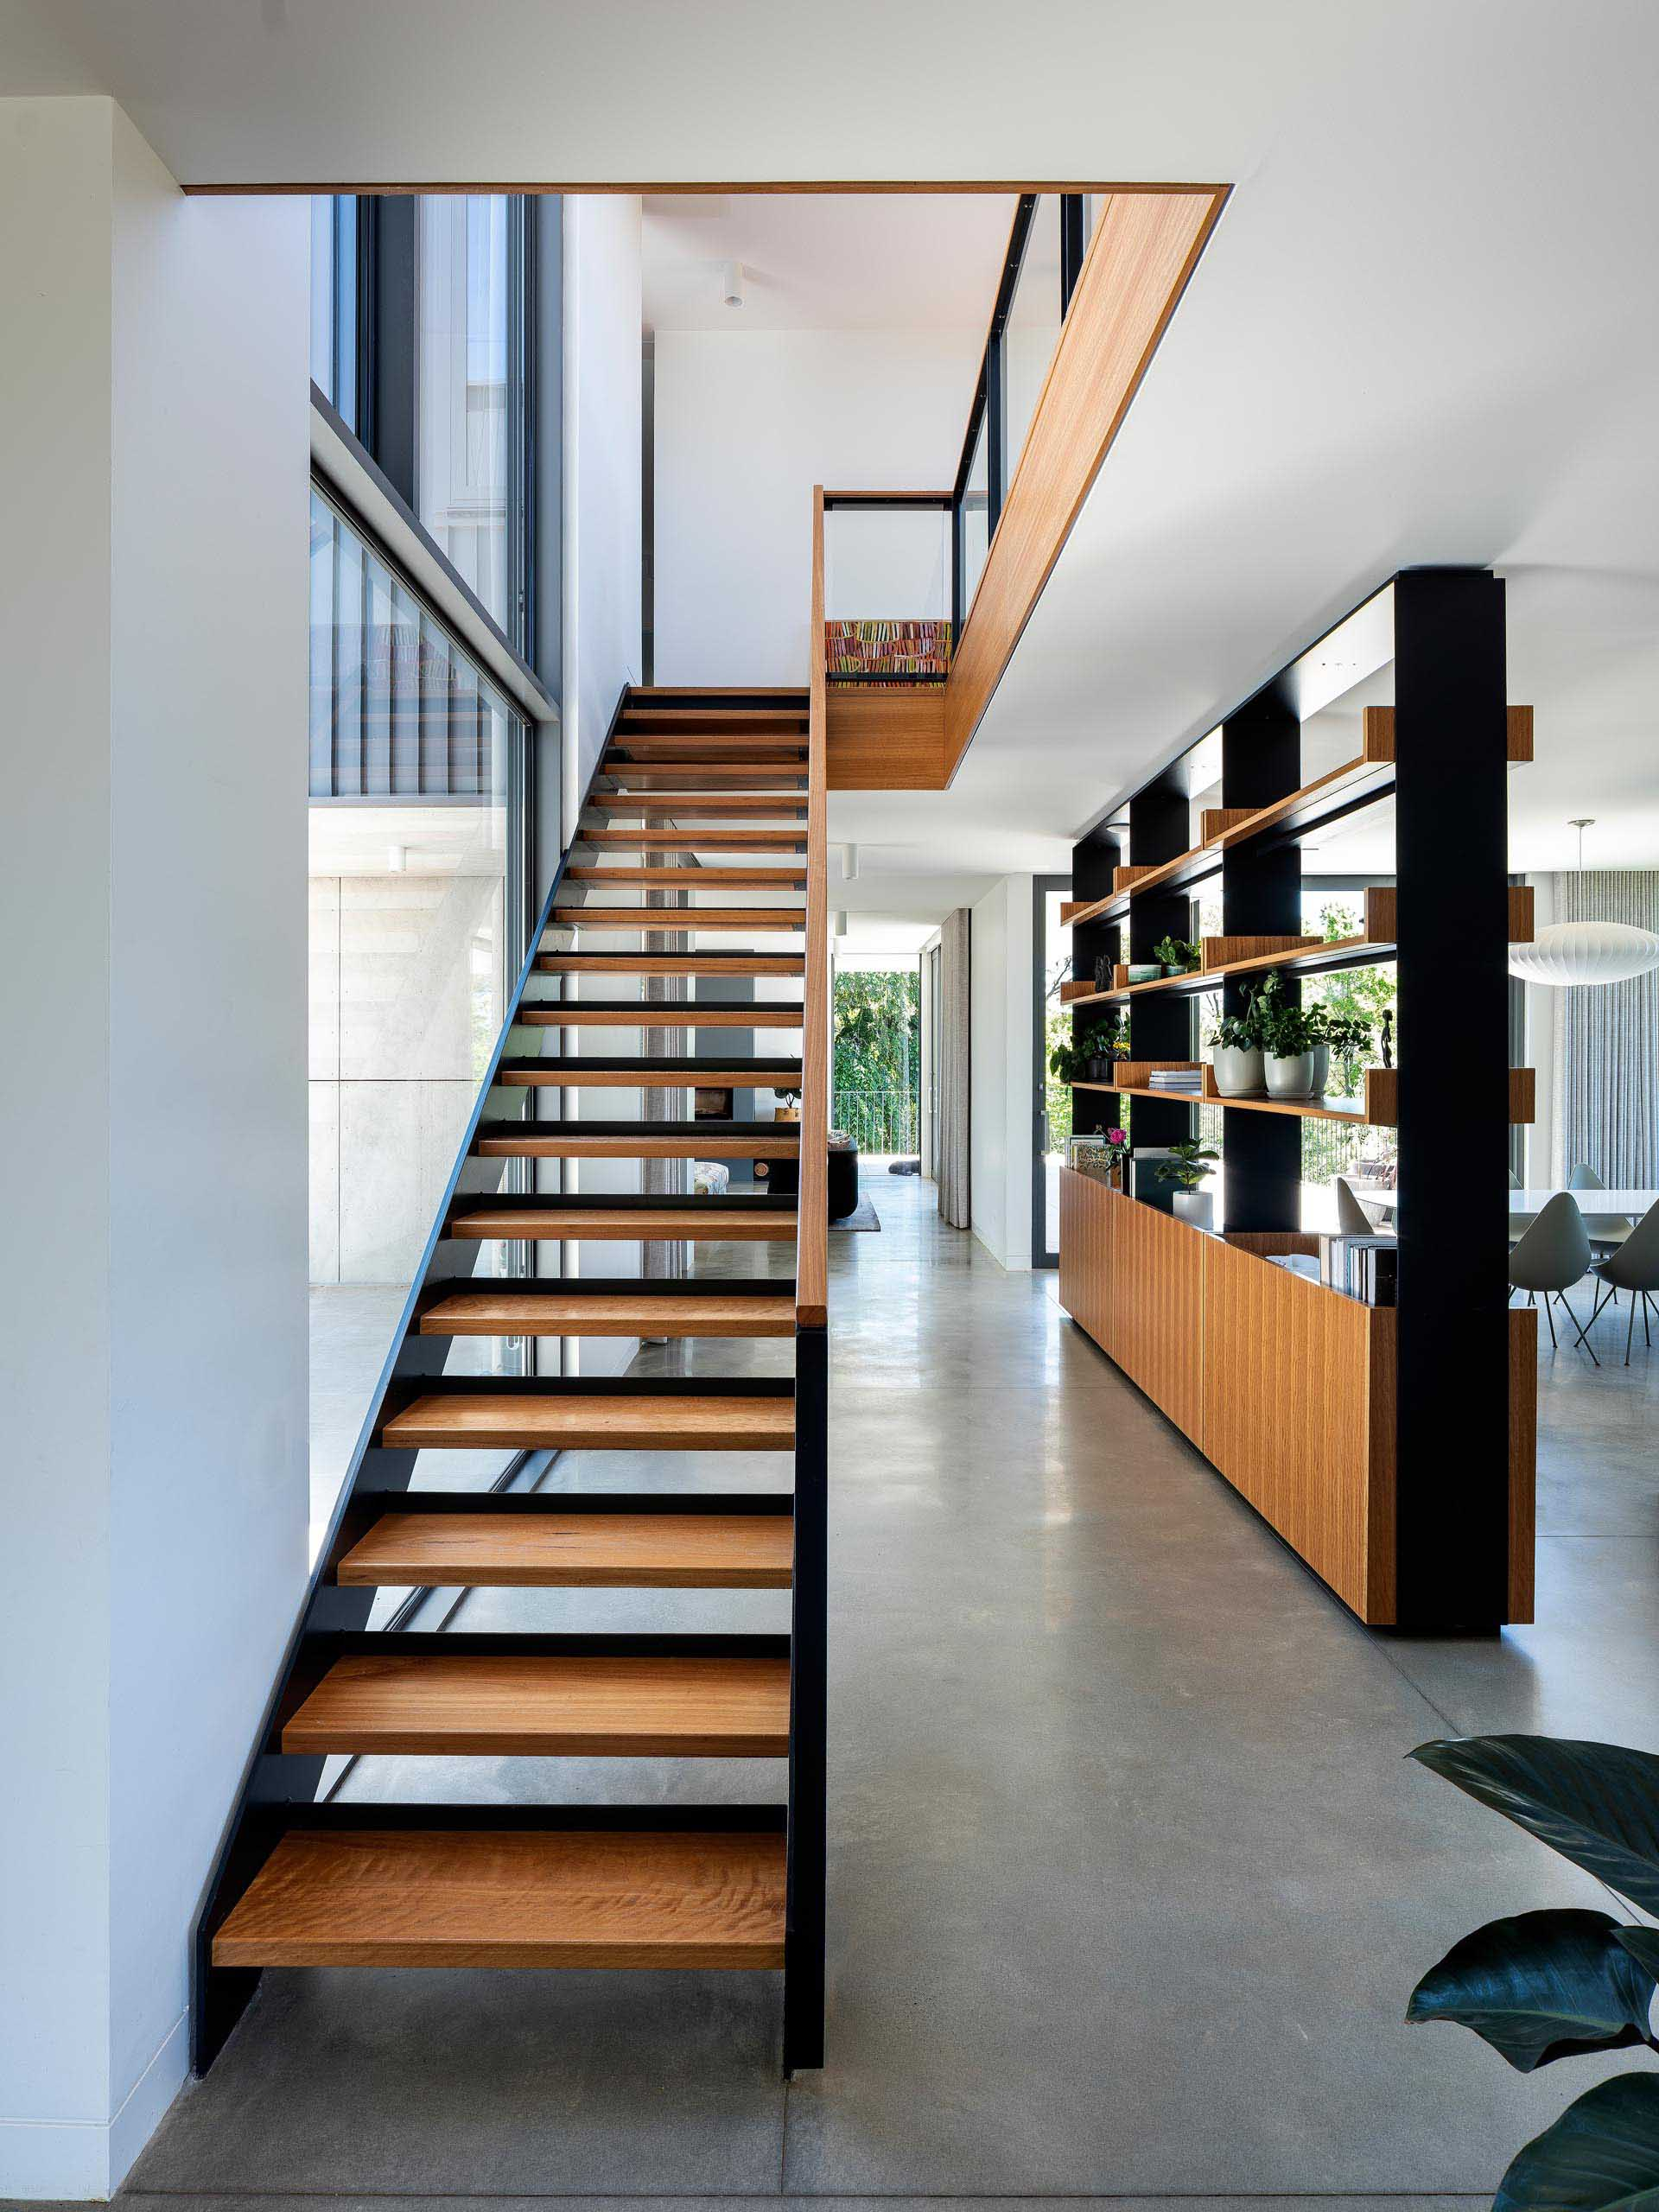 The shelving unit, with its black metal frame and wood accents, matches the design of the adjacent stairs, and contrasts other materials found throughout the home, like the heated concrete floors.